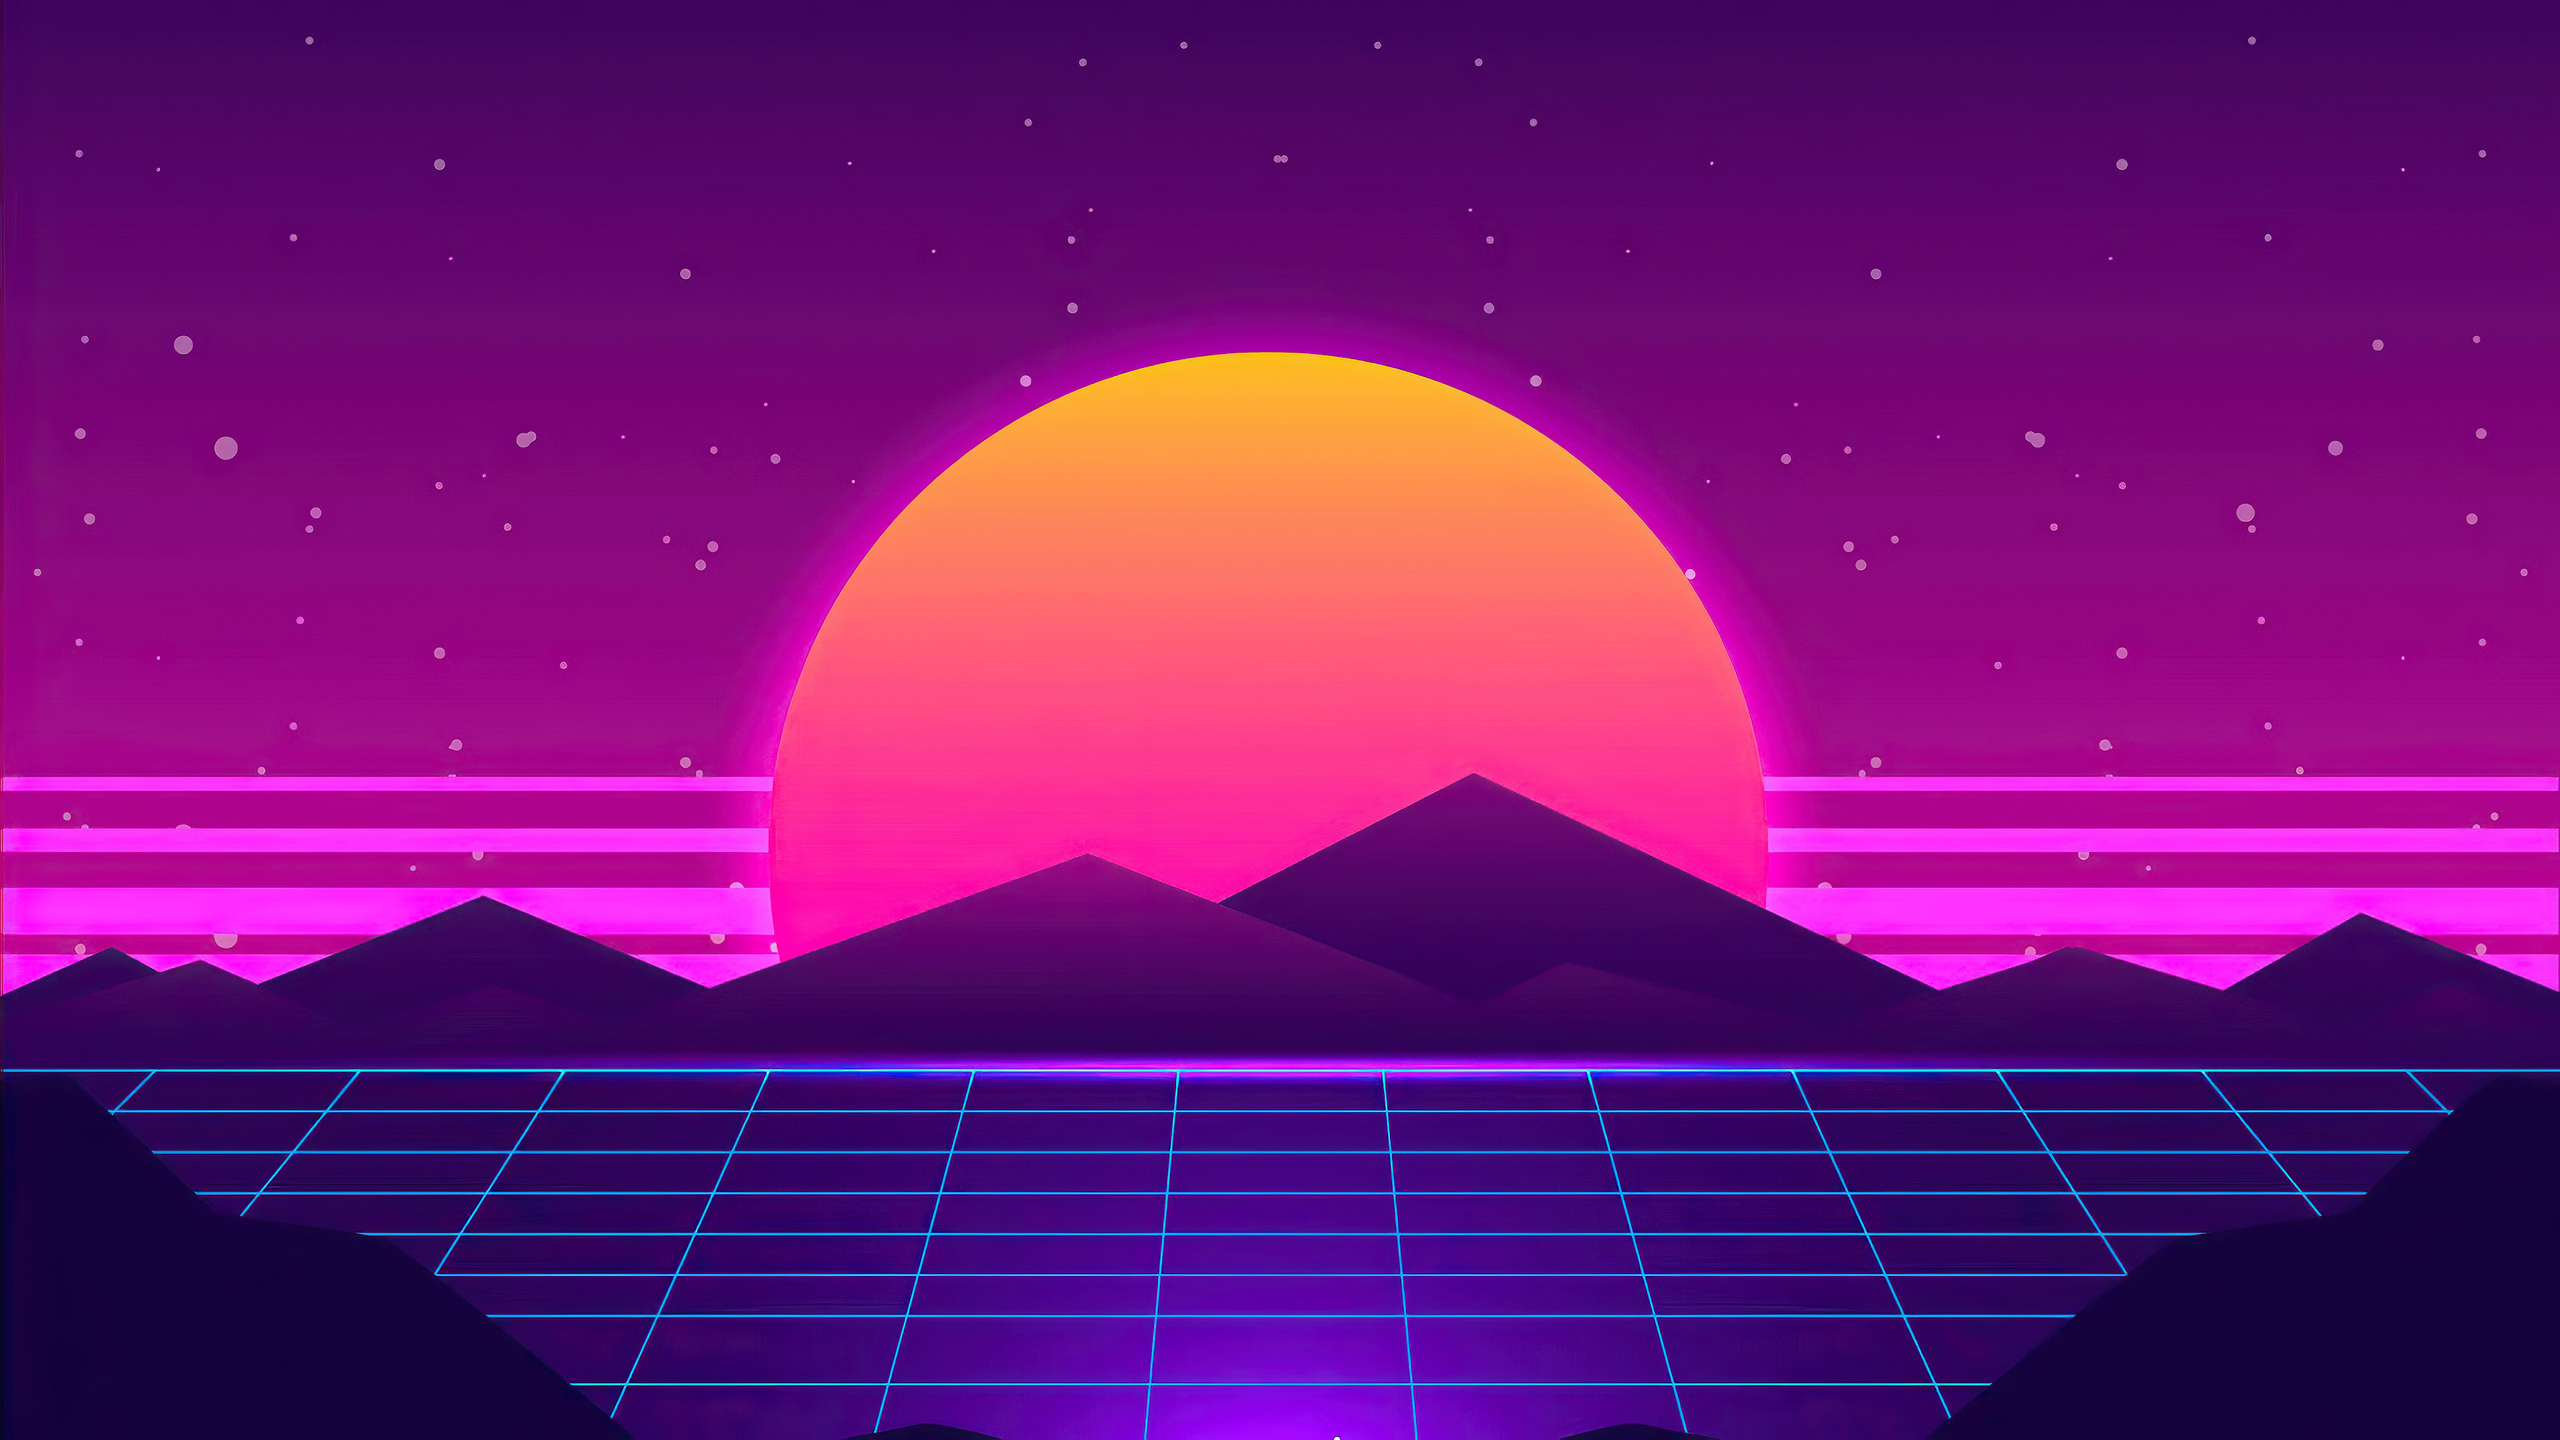 2560x1440 Synthwave Sun Mountains 4k 1440P Resolution HD ...